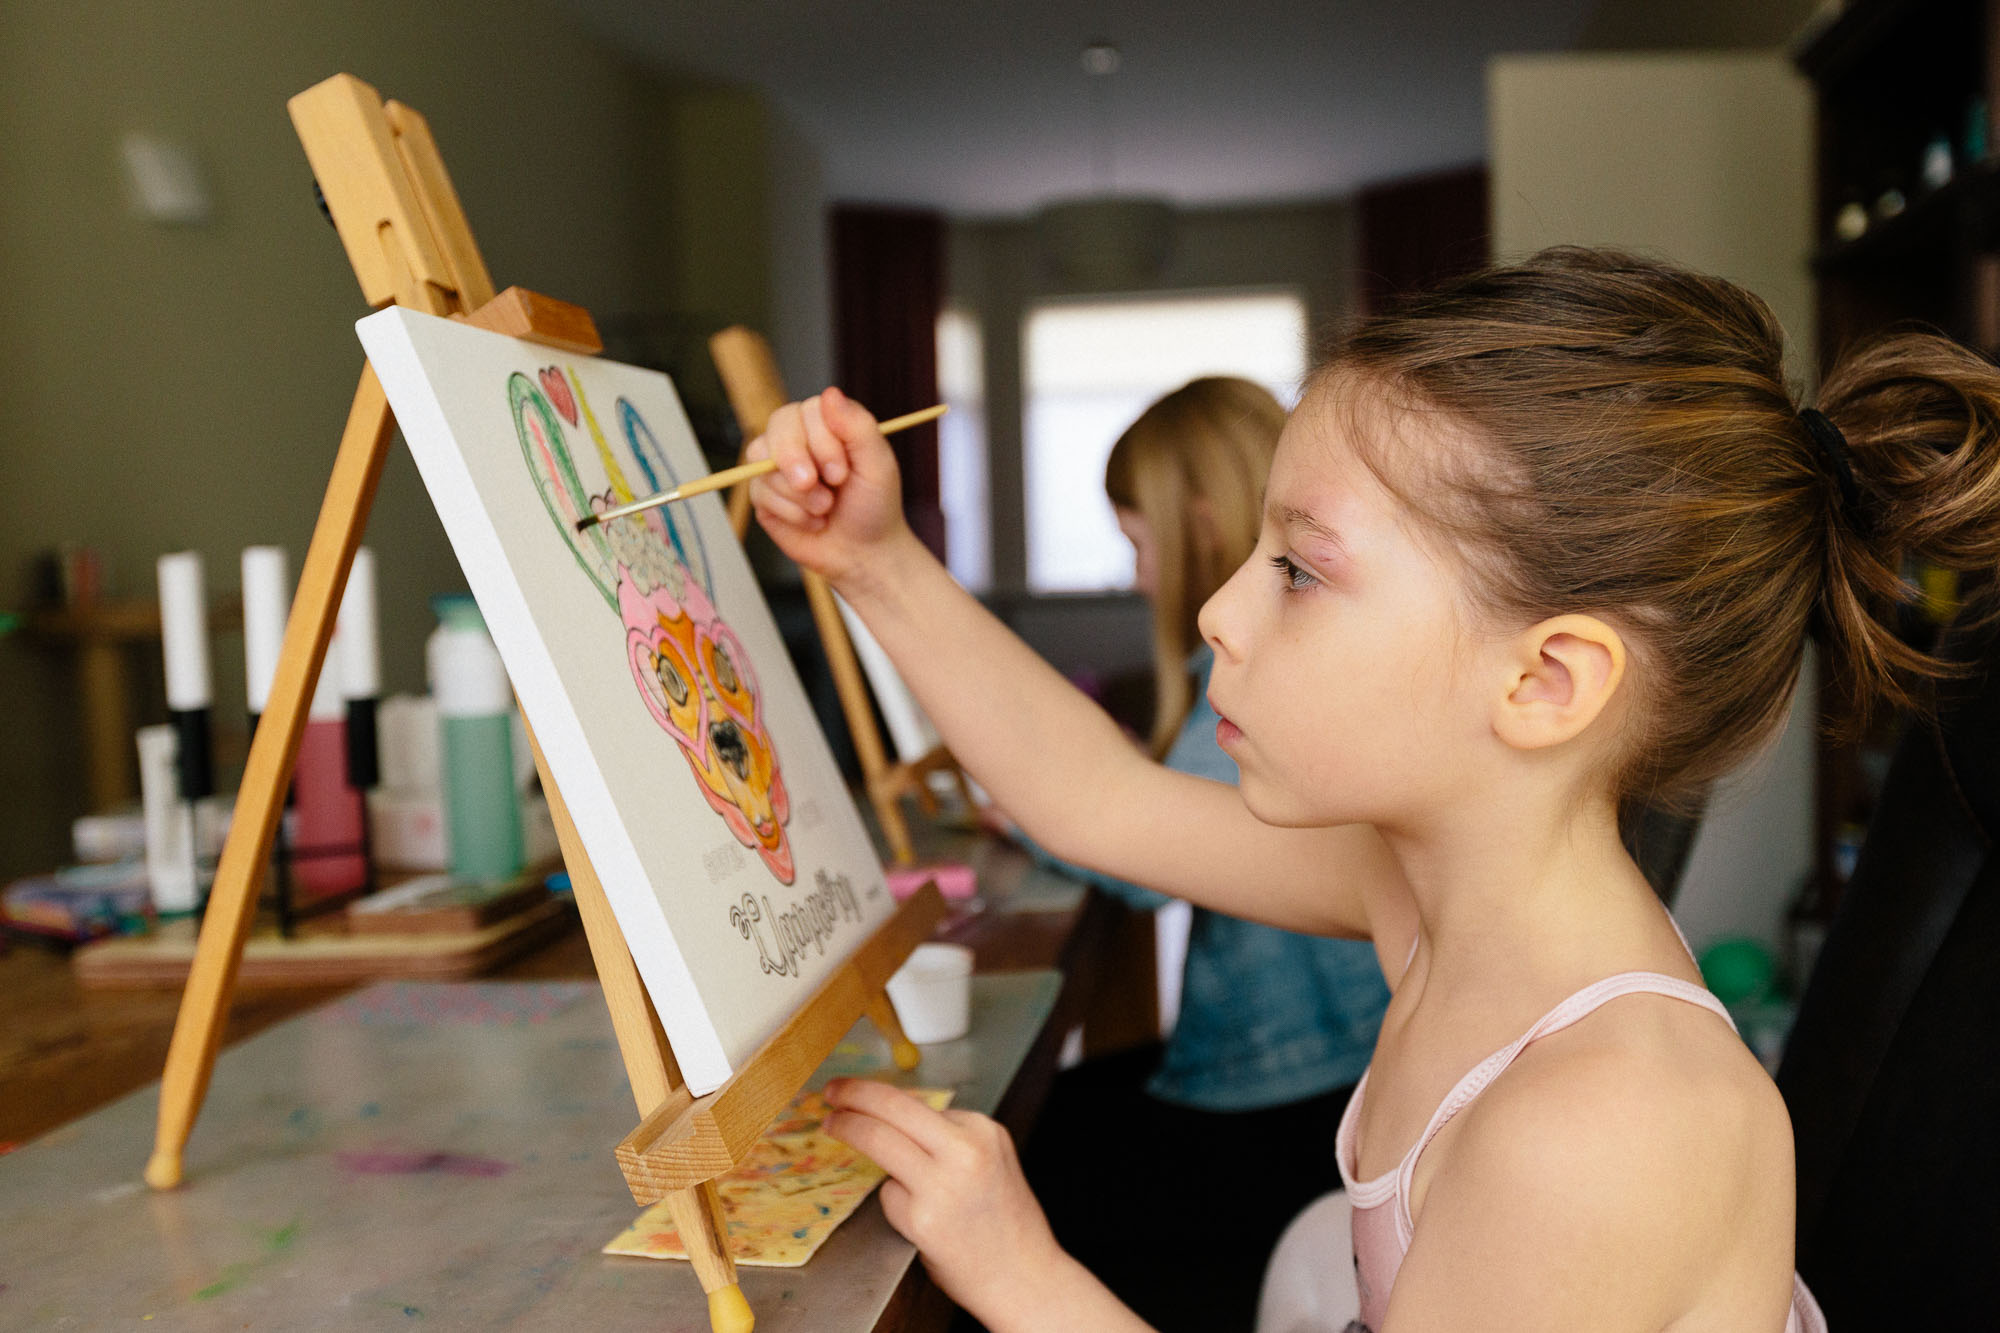 child painting a canvas on an easel